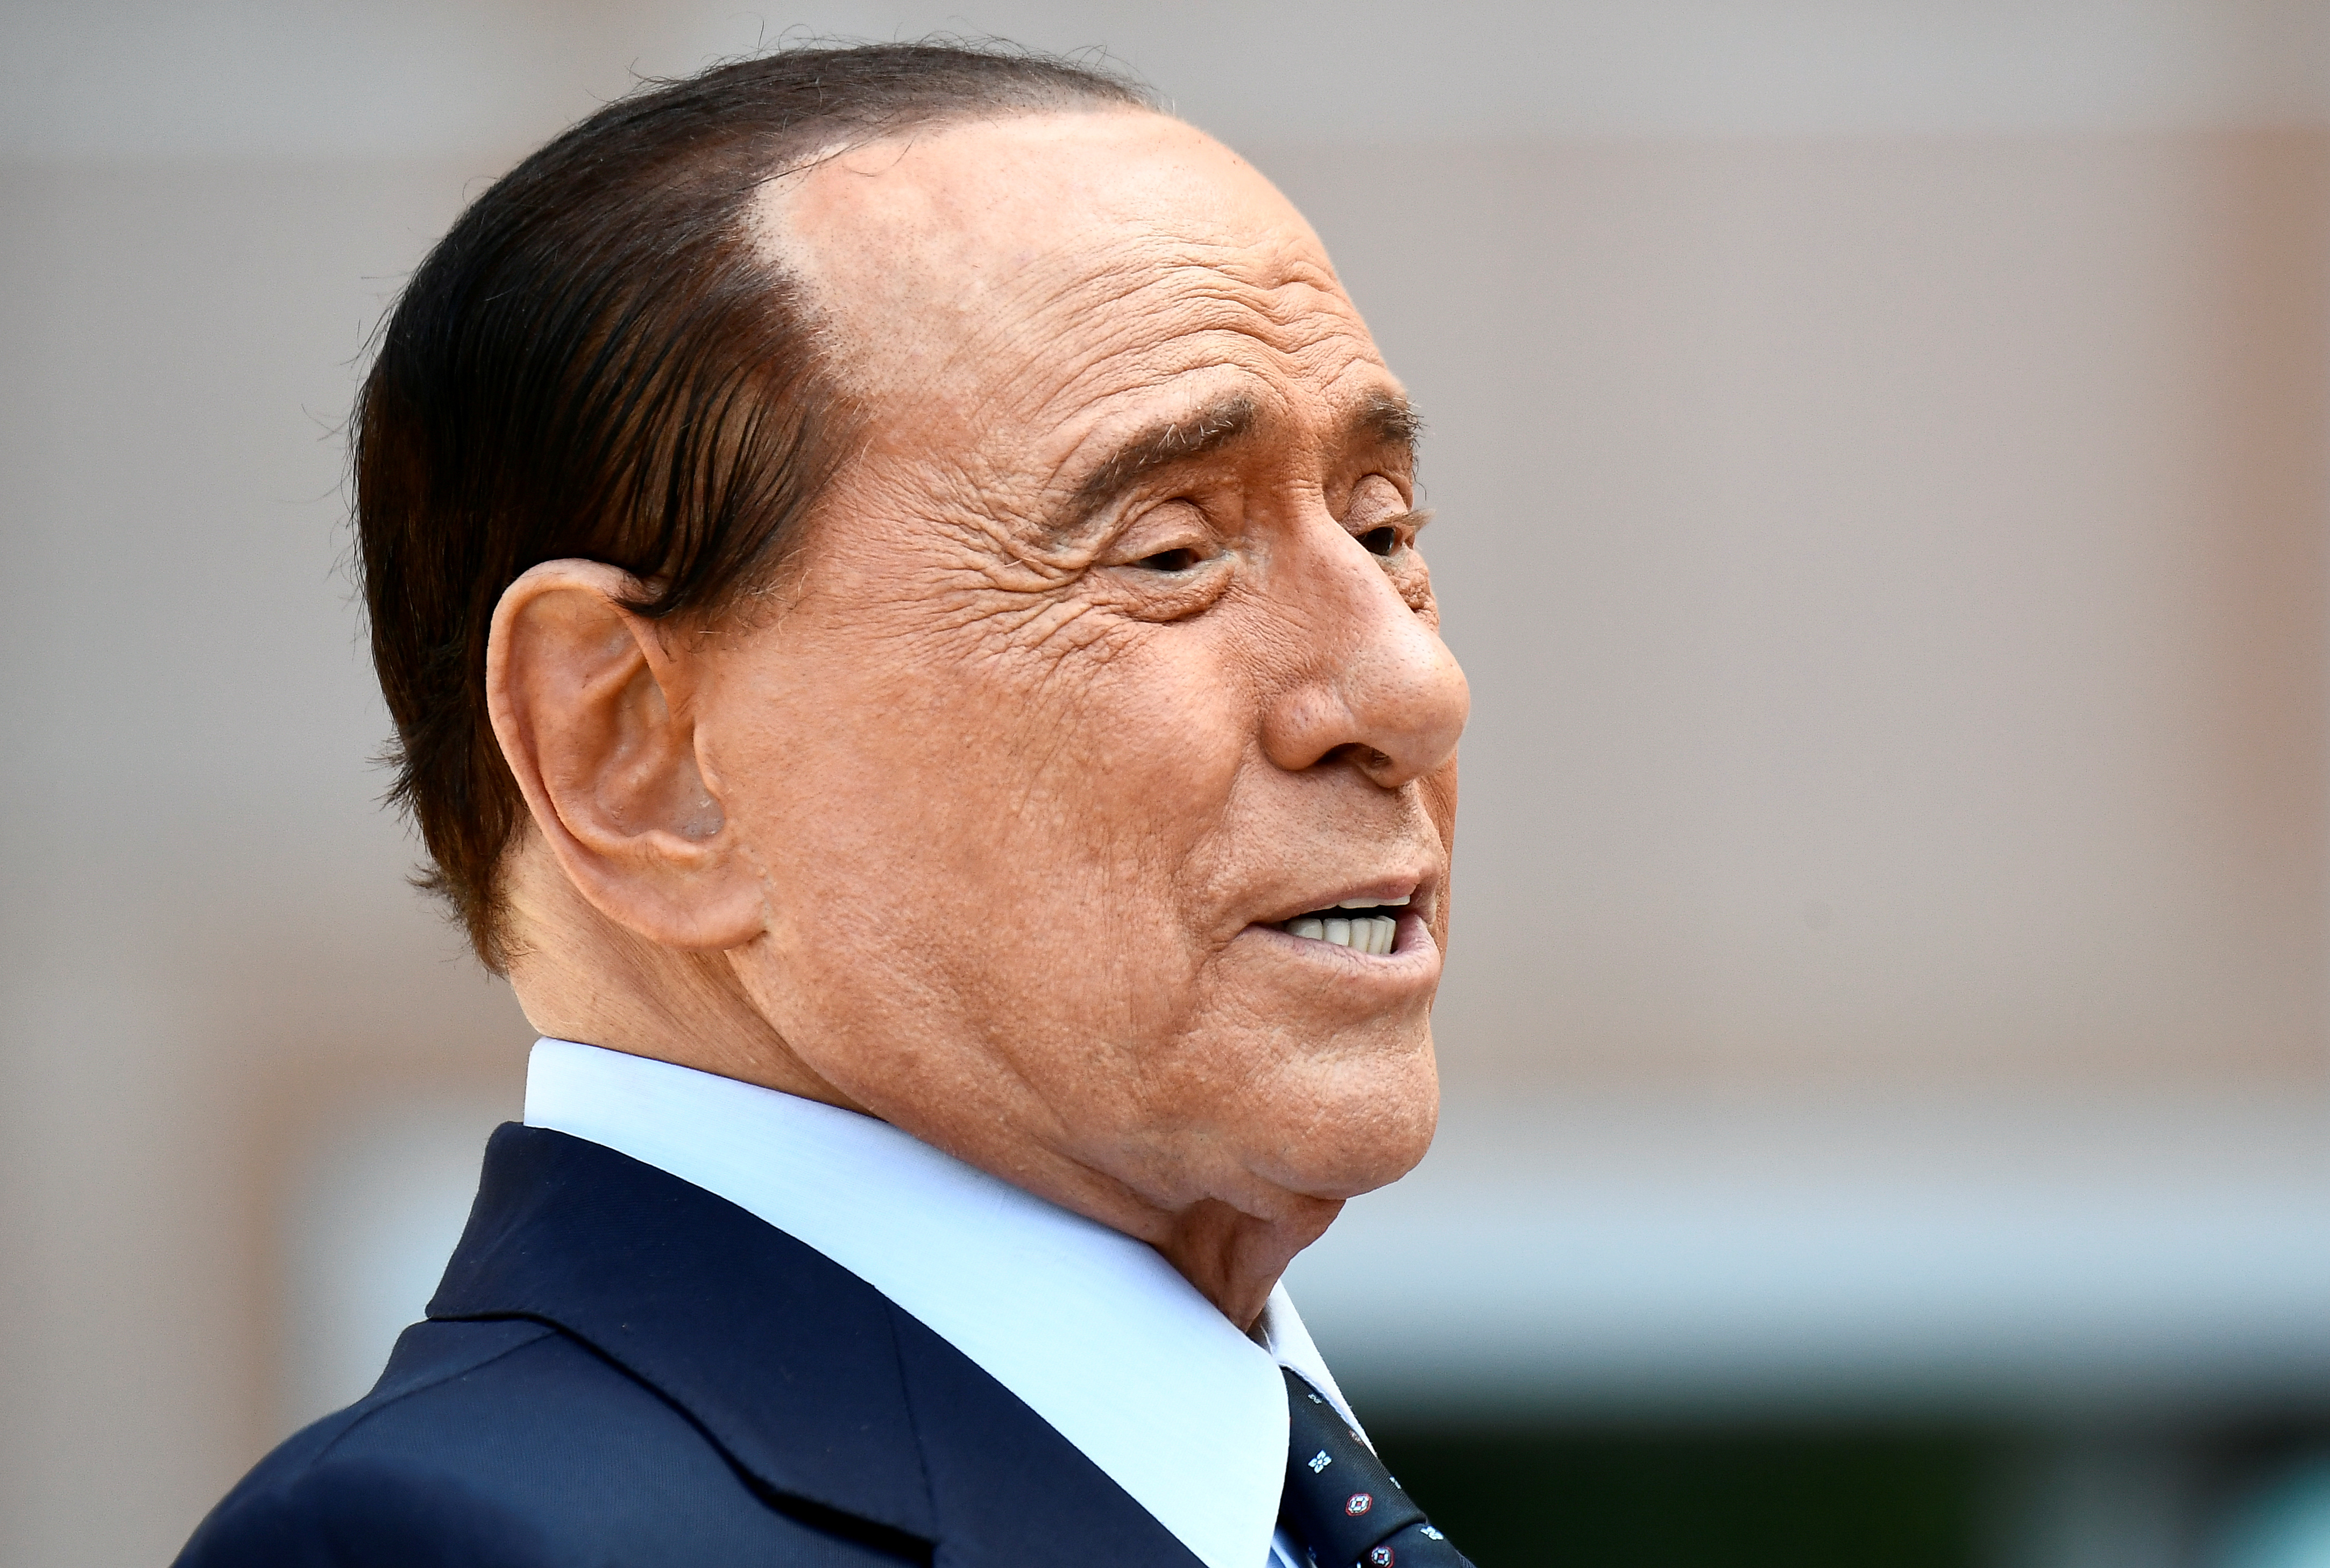 Former Italian Prime Minister Silvio Berlusconi speaks to the media as he leaves Milan's San Raffaele hospital, where he was being treated after testing positive for the coronavirus disease (COVID-19) and diagnosed with mild pneumonia, in Milan, Italy, September 14, 2020. REUTERS/Flavio Lo Scalzo/File Photo